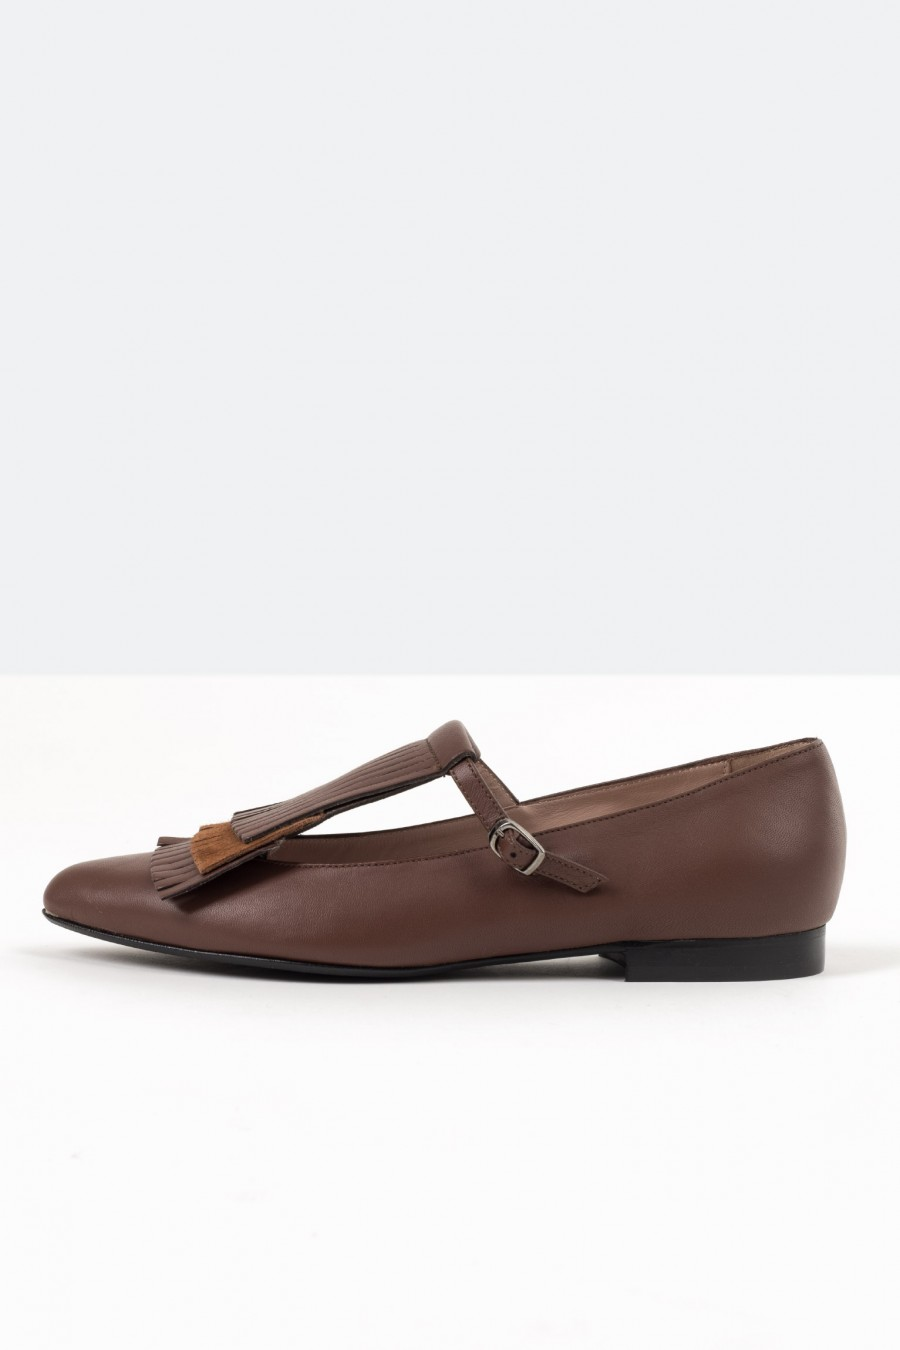 Brown shoes with strap